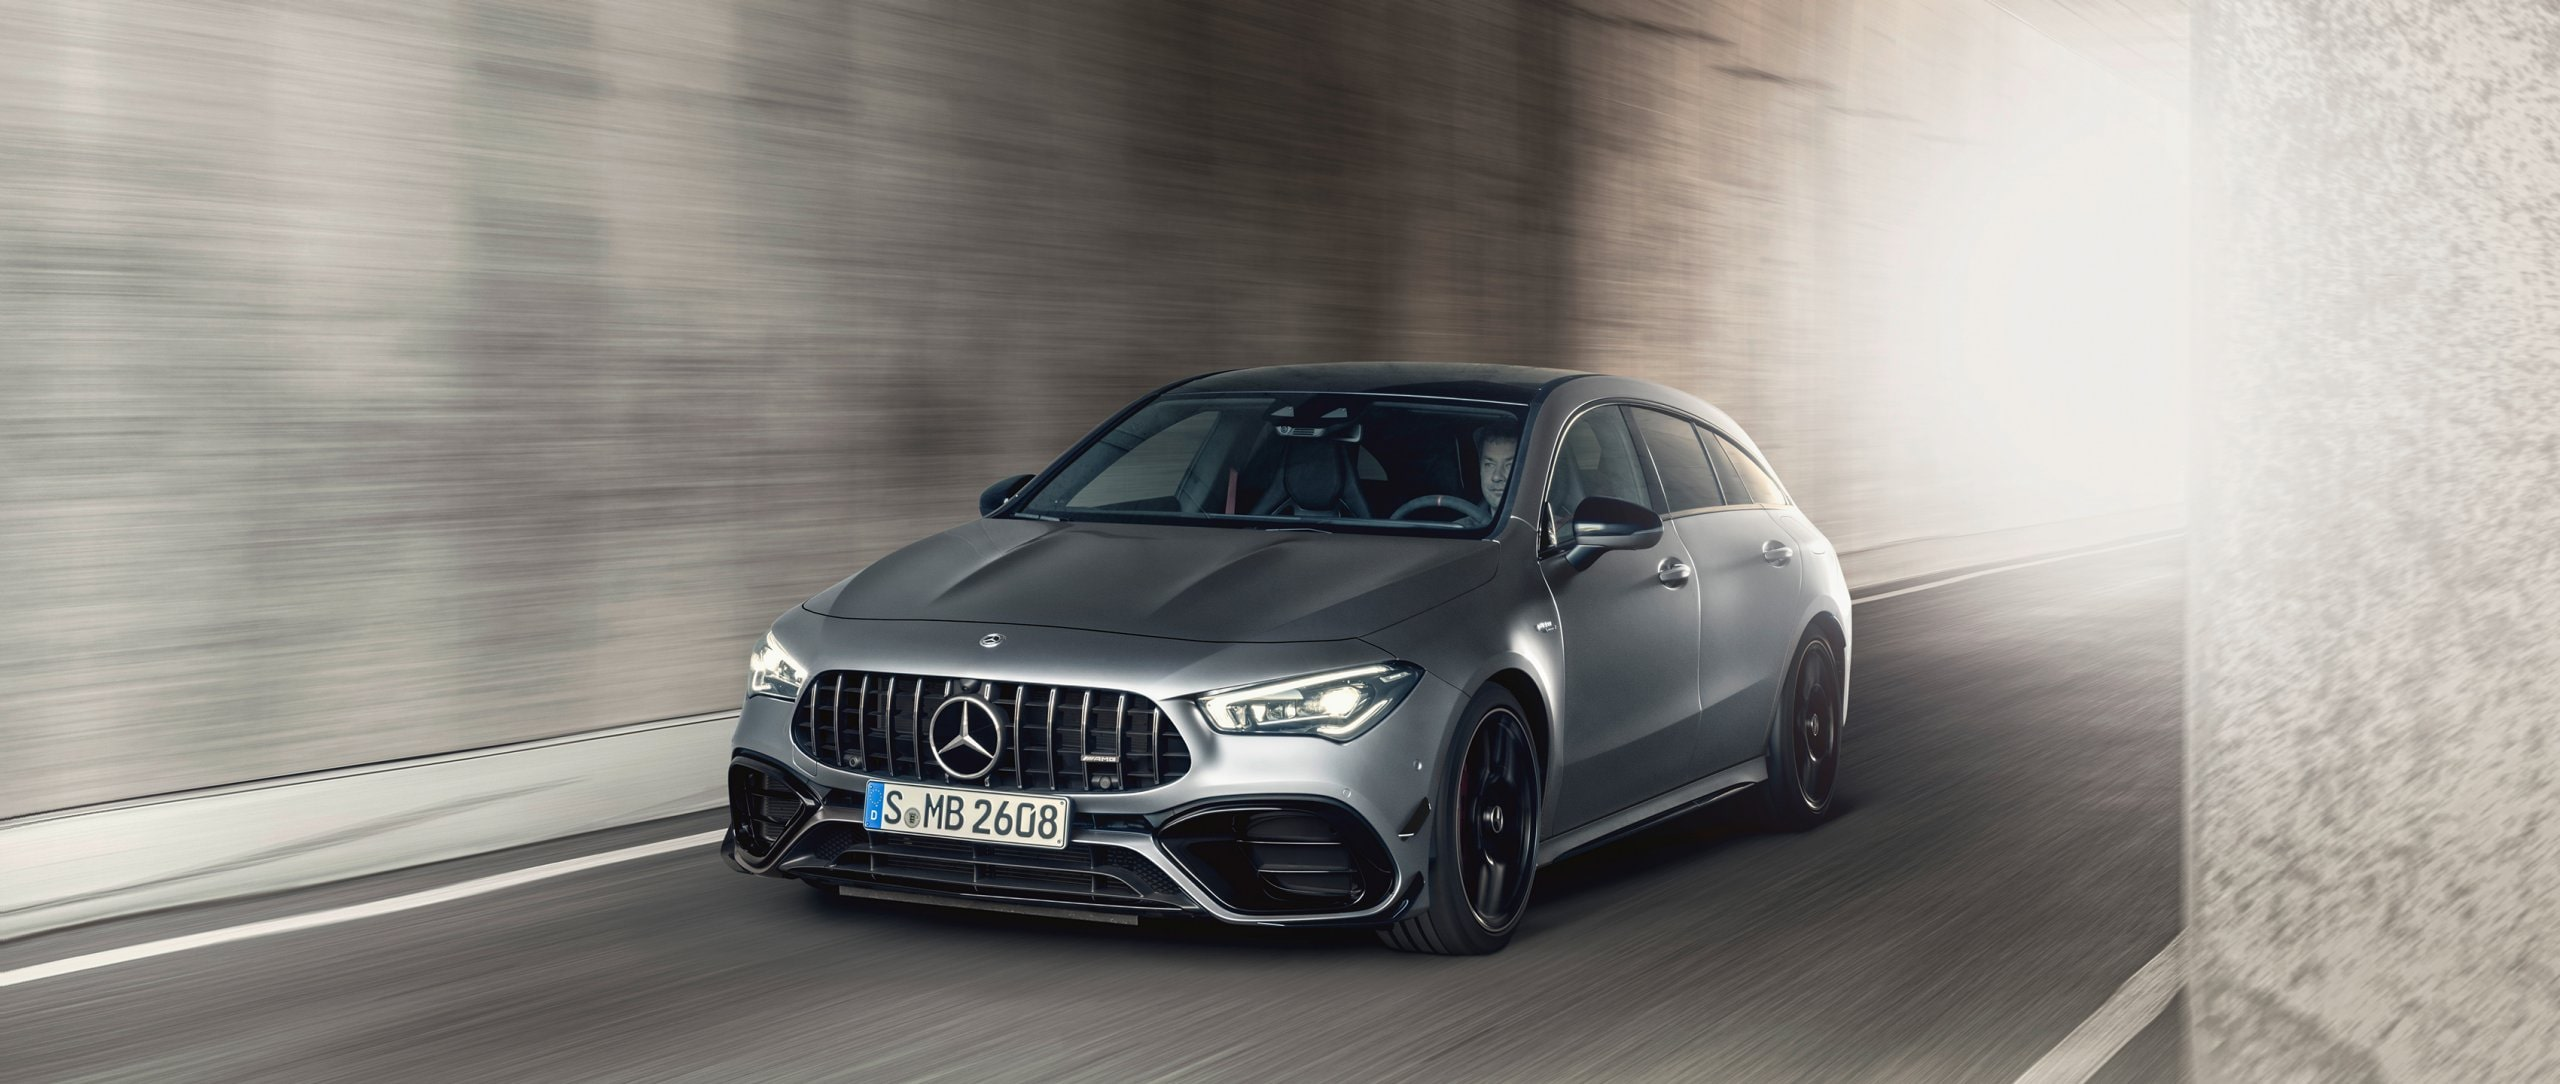 Mercedes-AMG CLA 45 S 4MATIC+ Shooting Brake (X 118) (2020) in designo mountain grey magno in front view in a tunnel